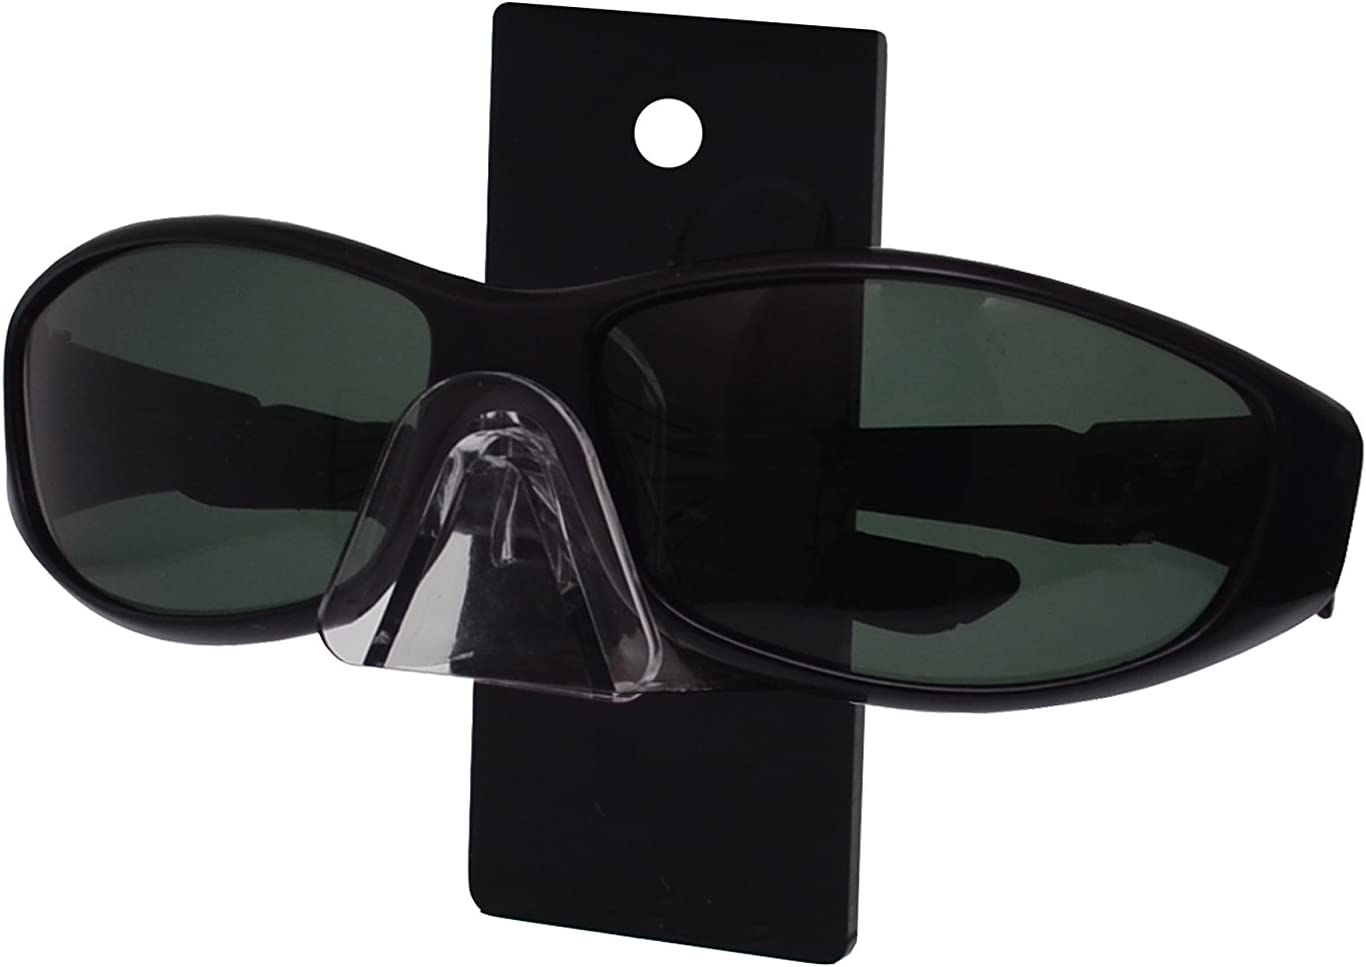 3 Tier SUNGLASSES EYEGLASSES display STAND with Black Back Glasses Nose Acrylic